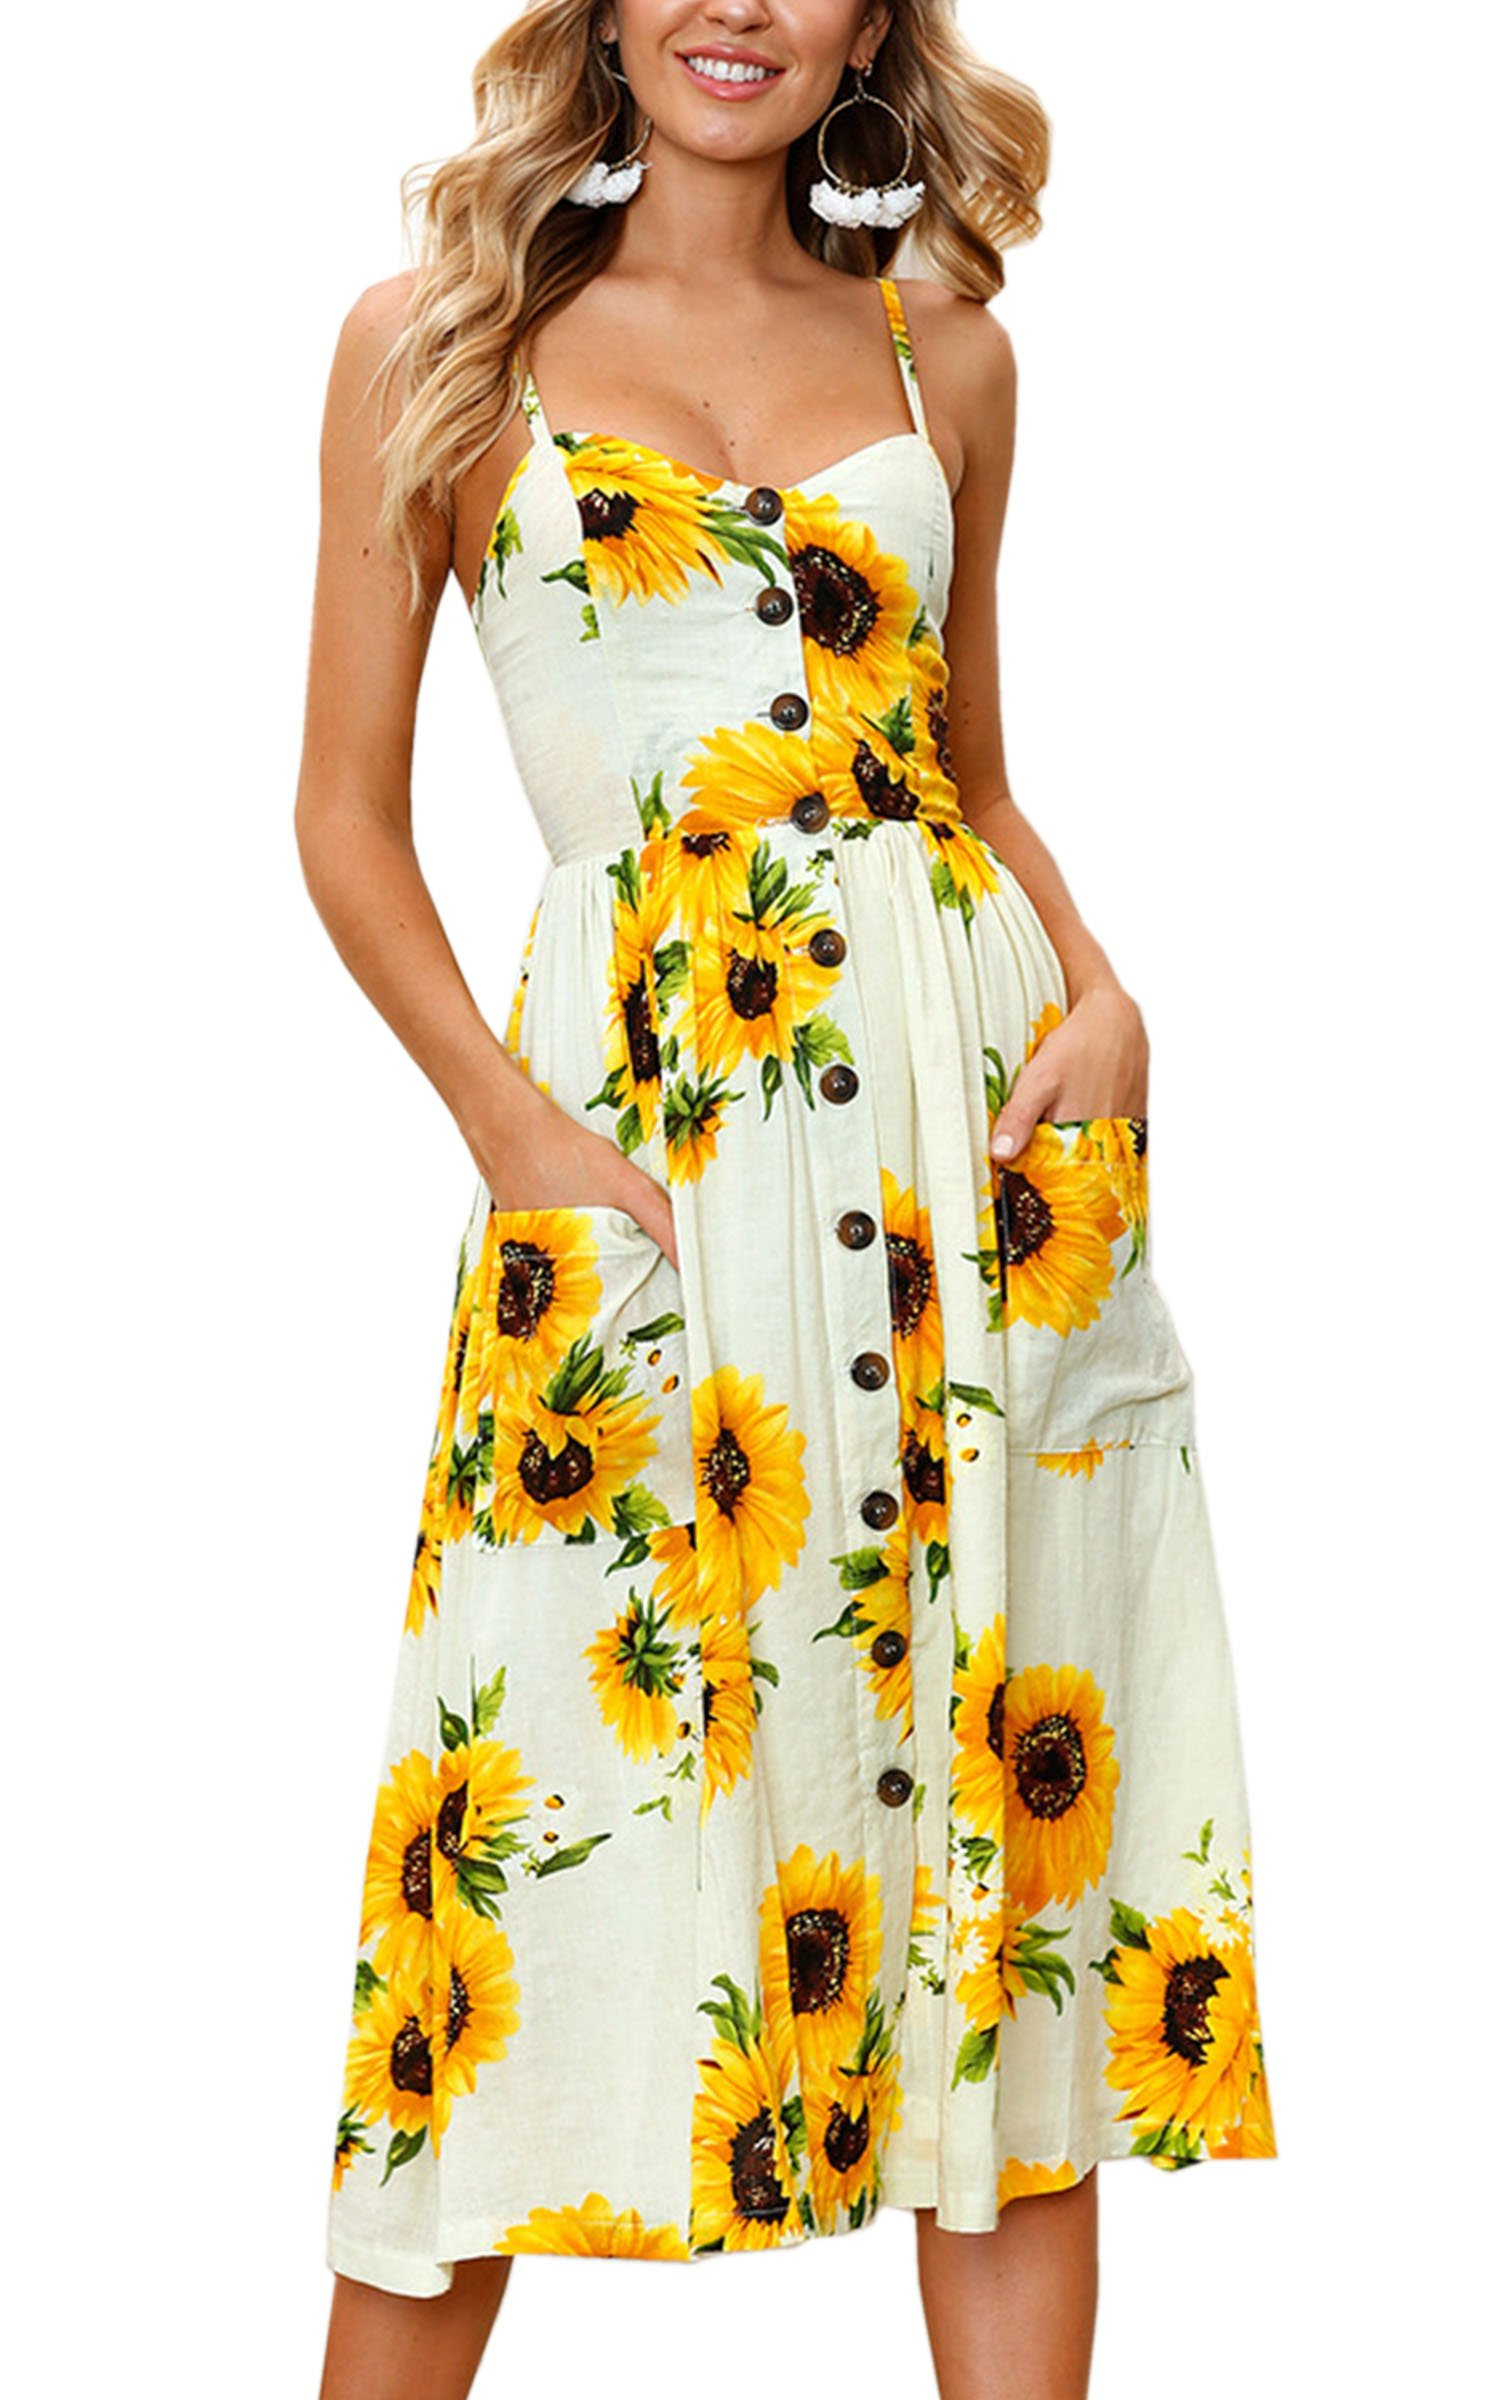 Women's Dresses-Summer Floral Button Down Swing Midi Dress with Pockets 3